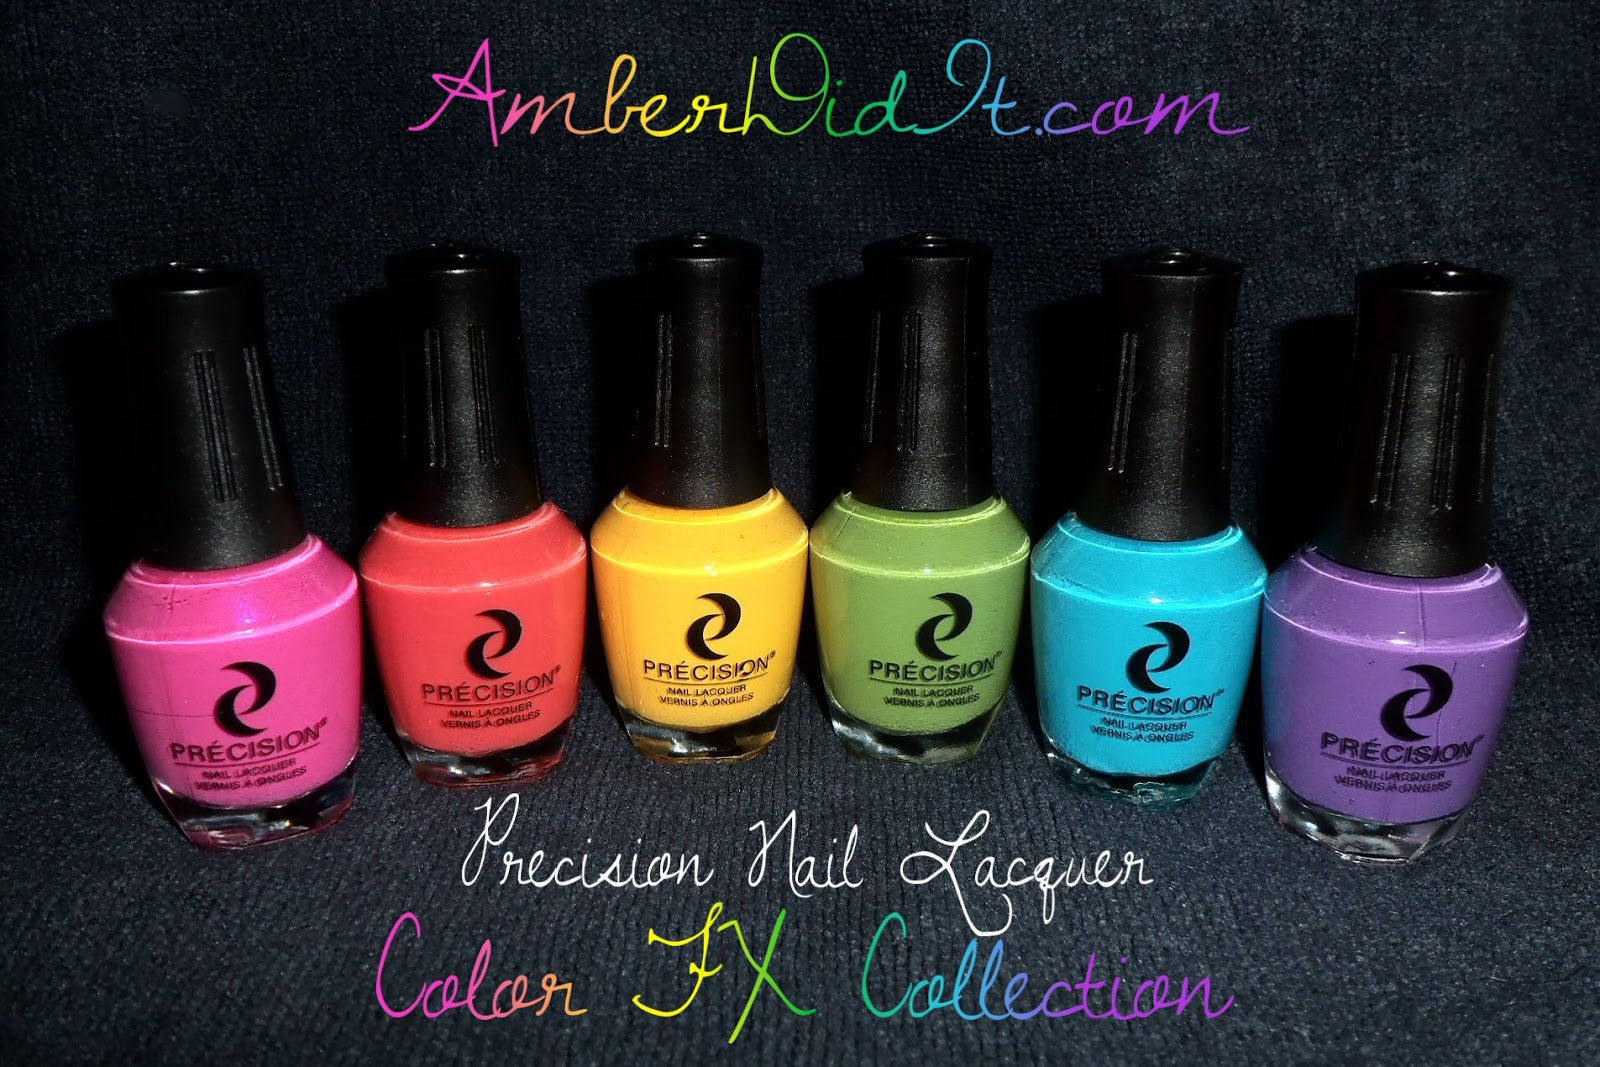 Precision Nail Lacquer Color Fx Collection Swatches And Review